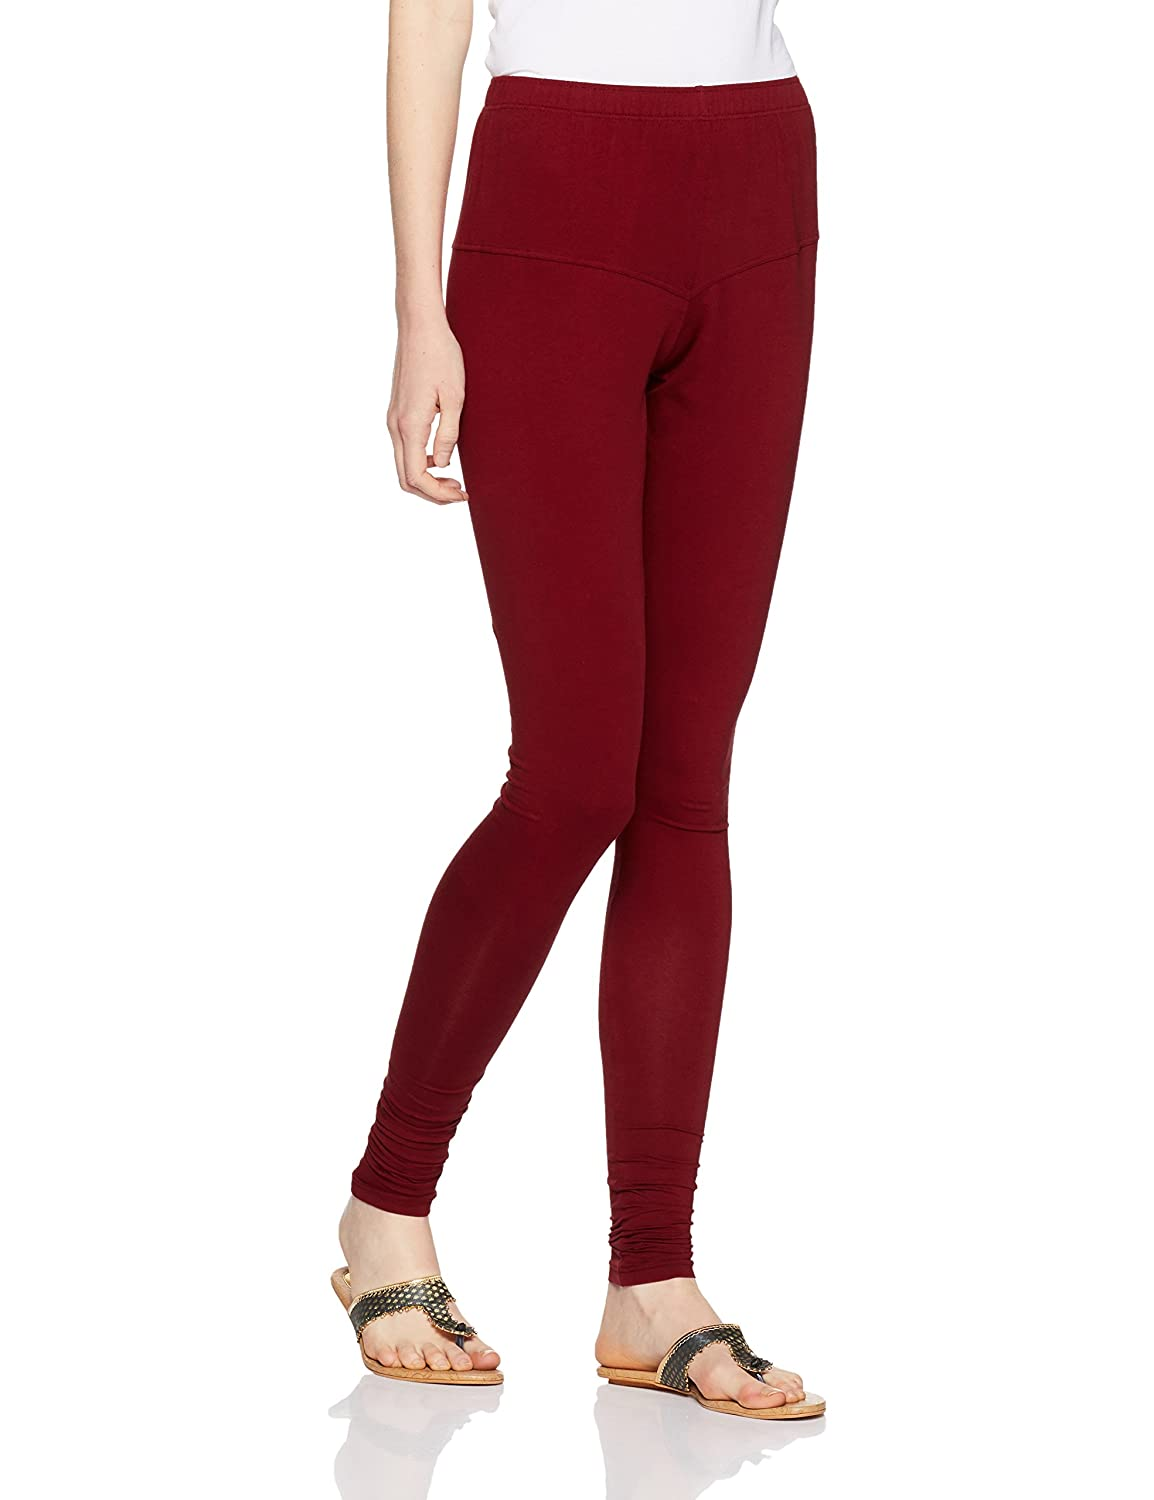 LUX LYRA Women's Leggings (LYRA IC Legg Maroon_Freesize)